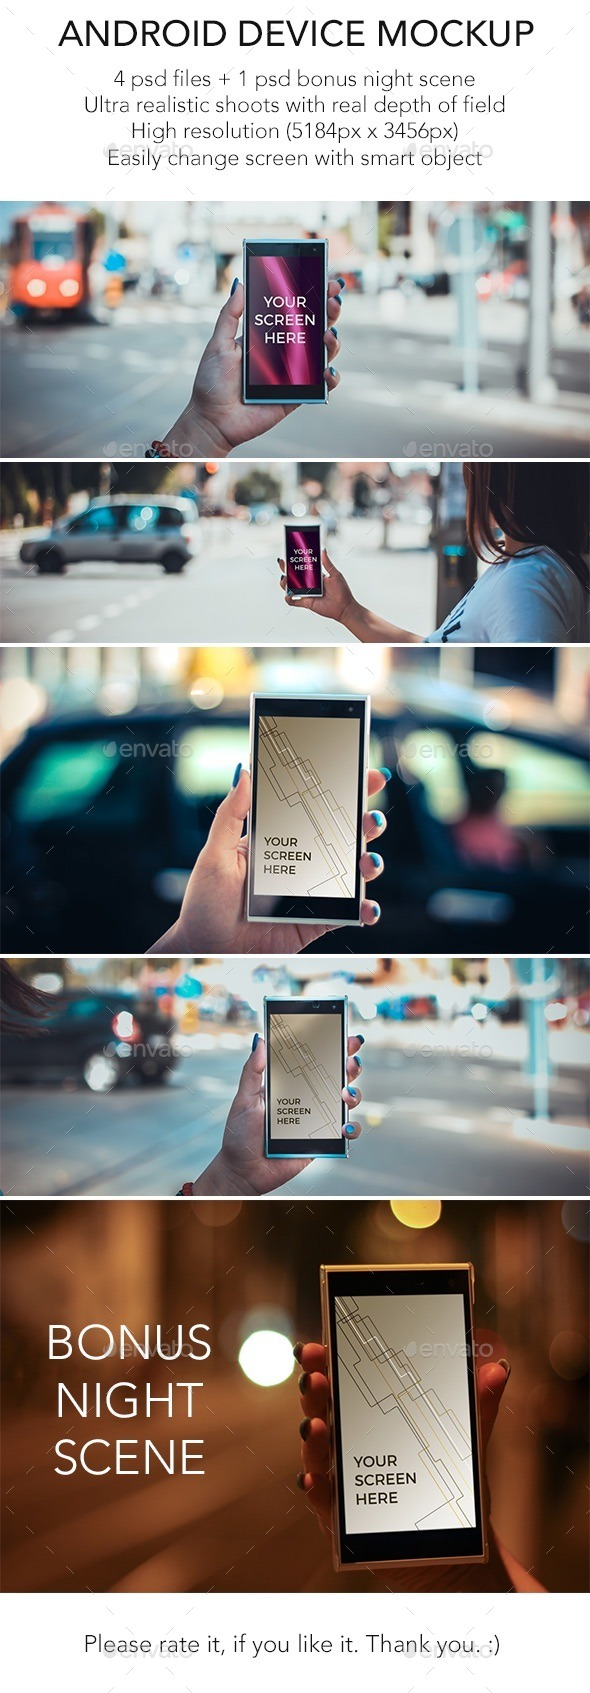 Android In The City - Mobile Displays